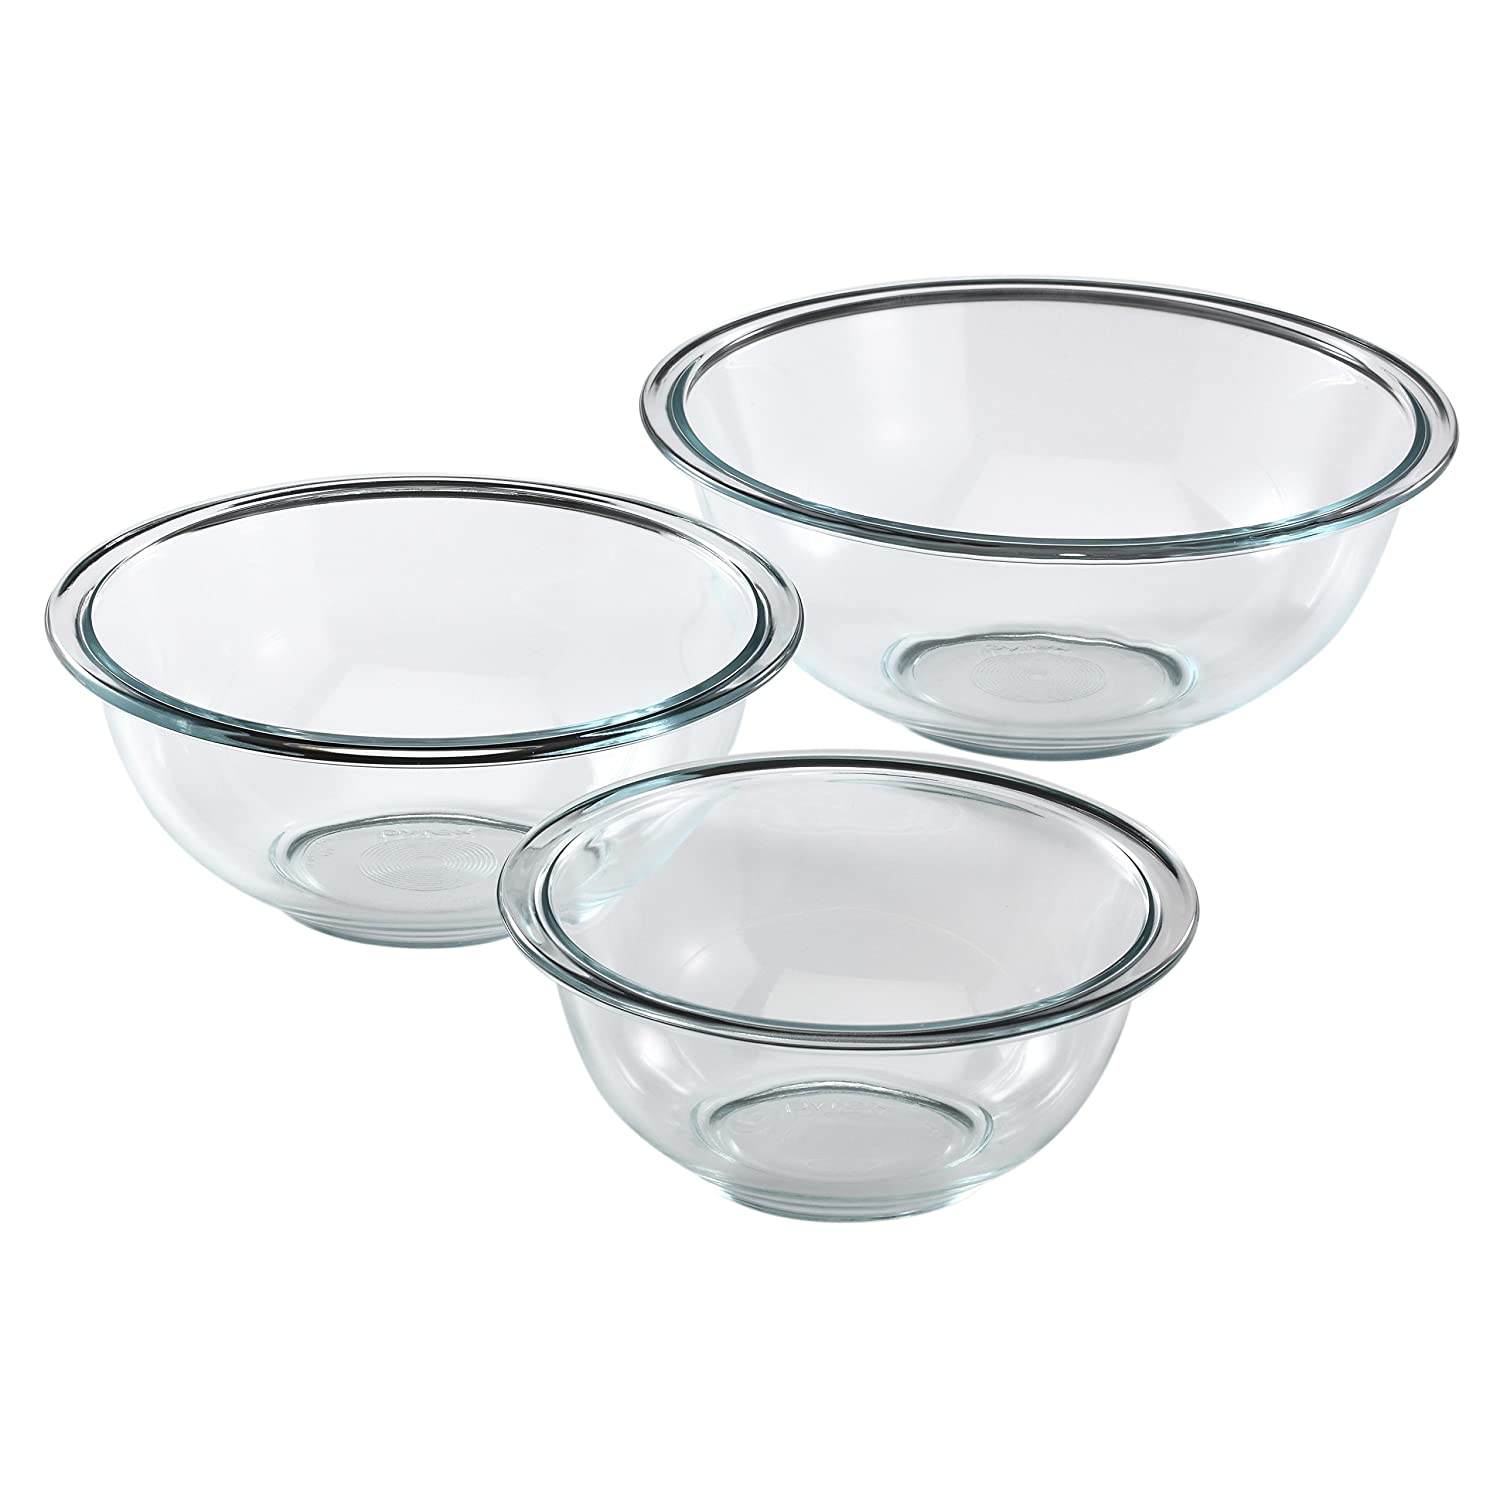 Pyrex 3-Piece Glass Mixing Bowl Set